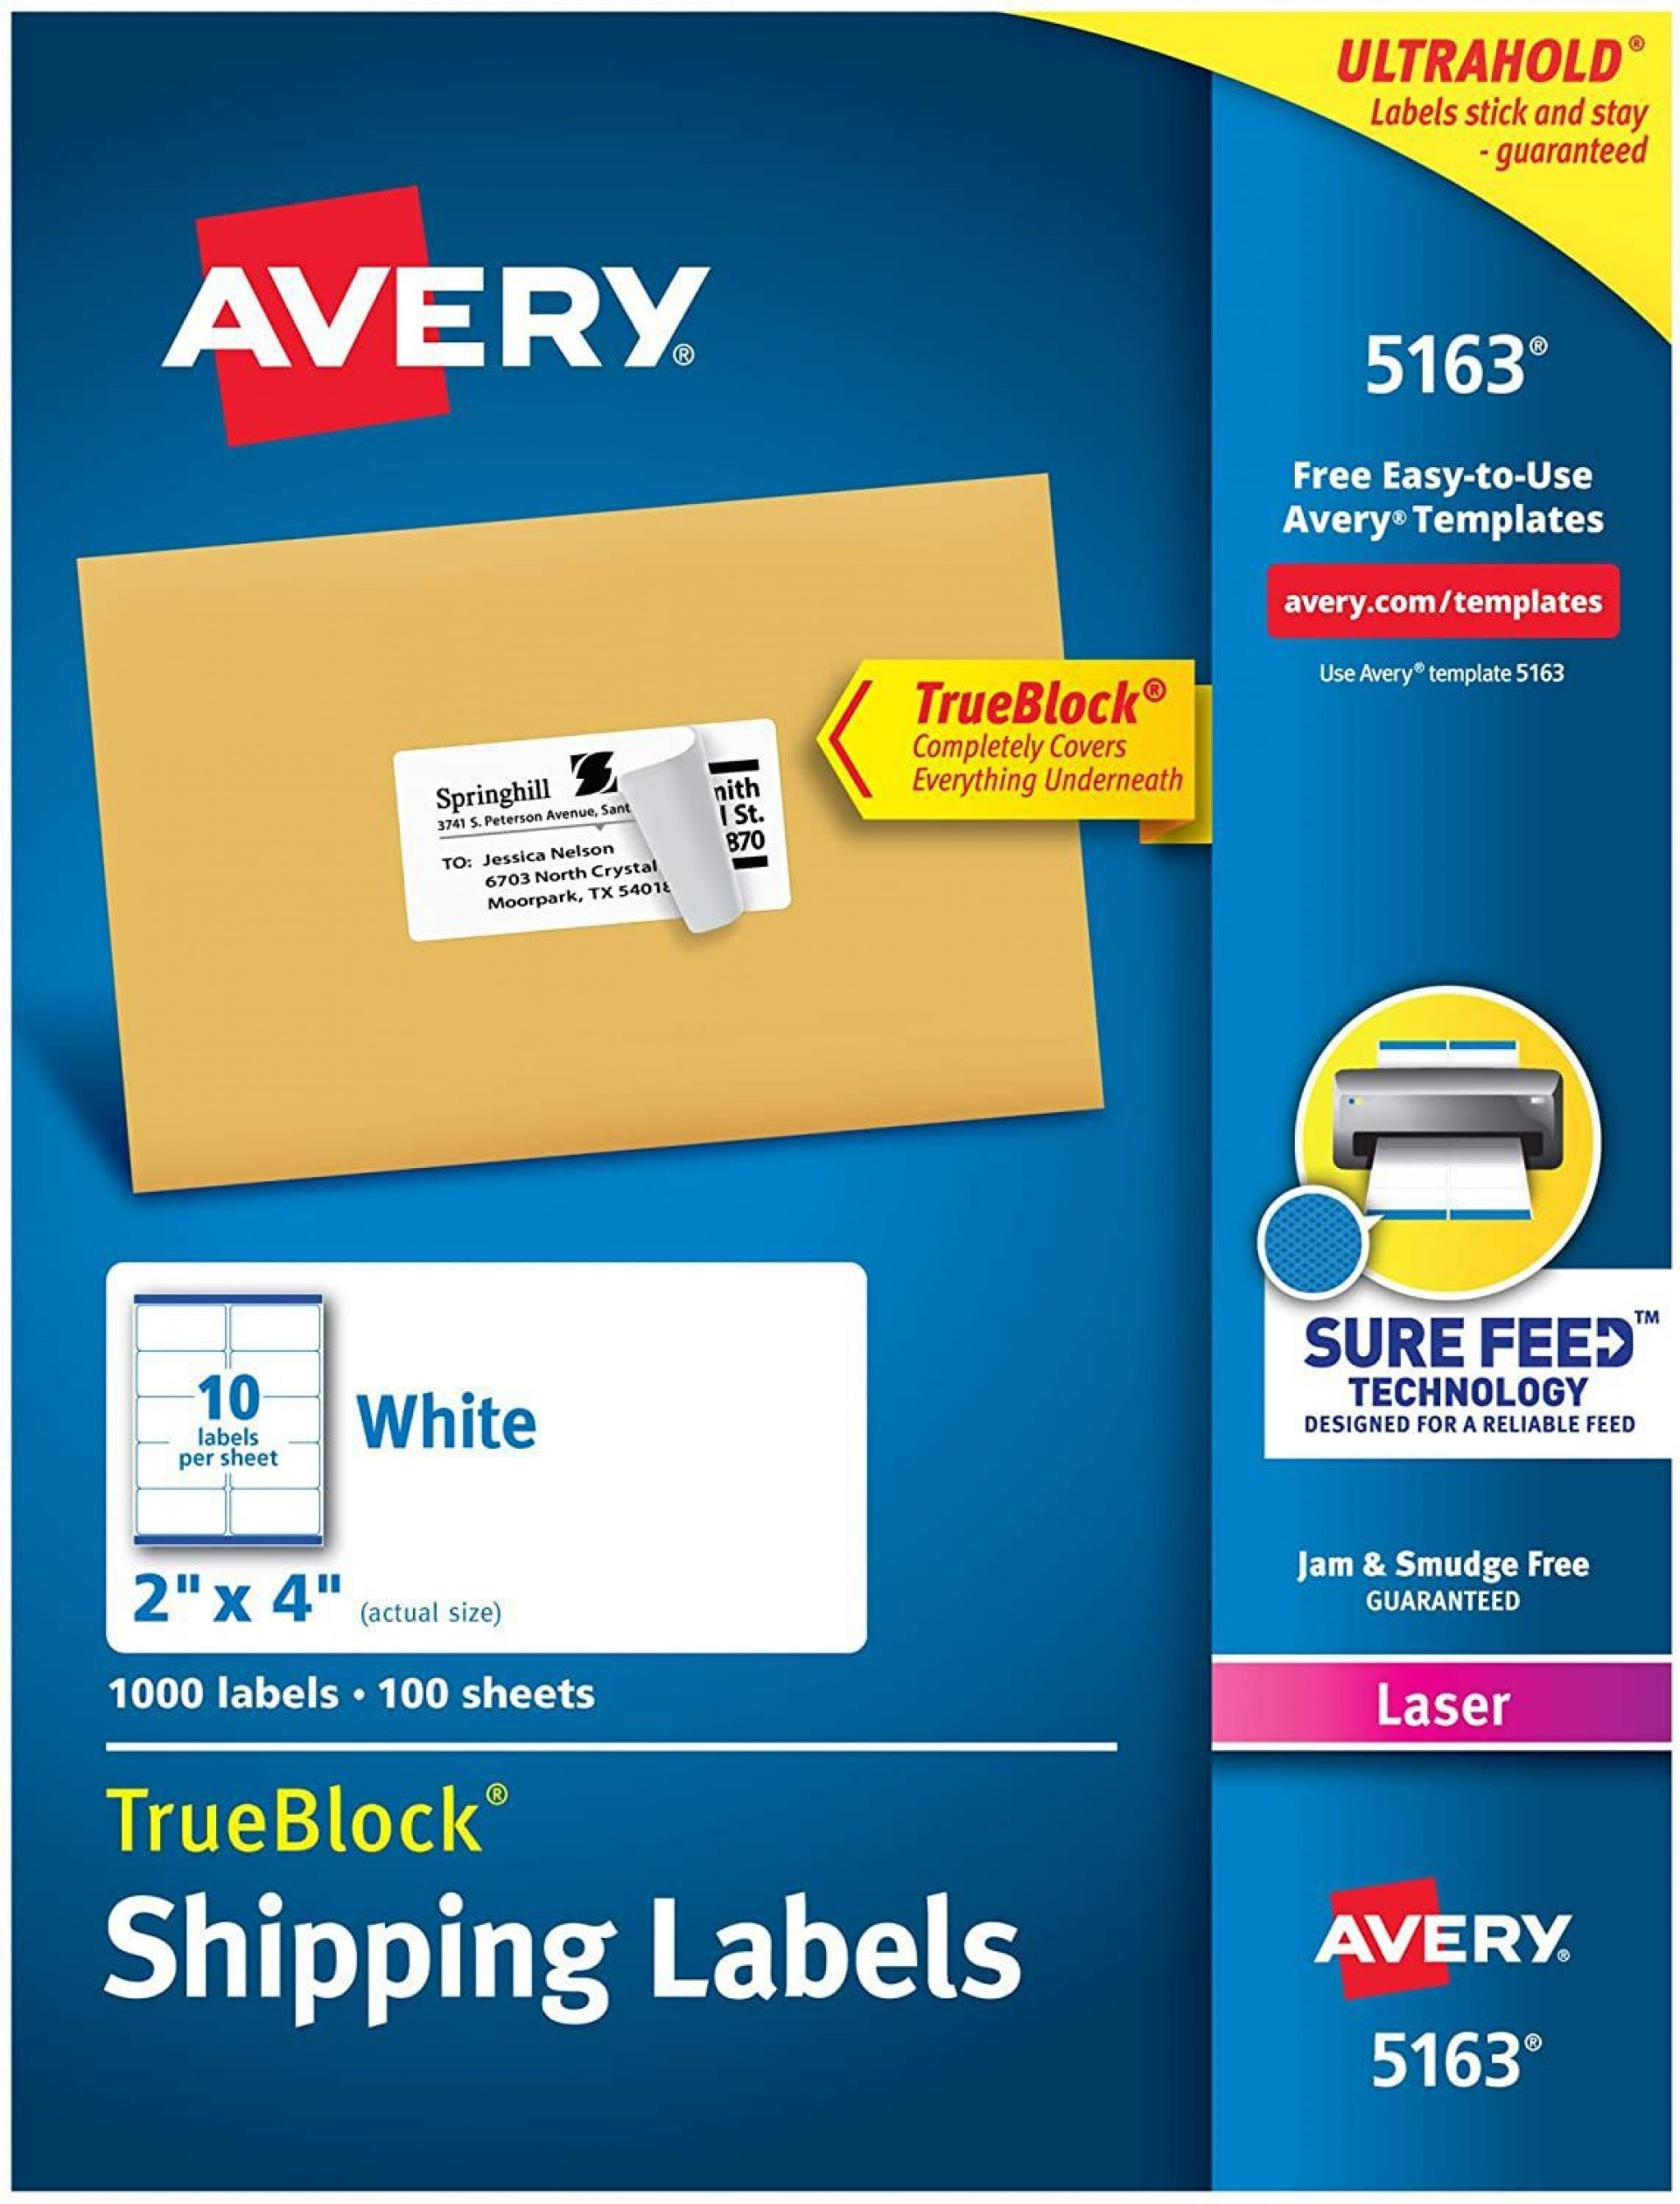 001 Top Free Avery Mailing Label Template Image  Templates Addres For Mac 8160 51631920